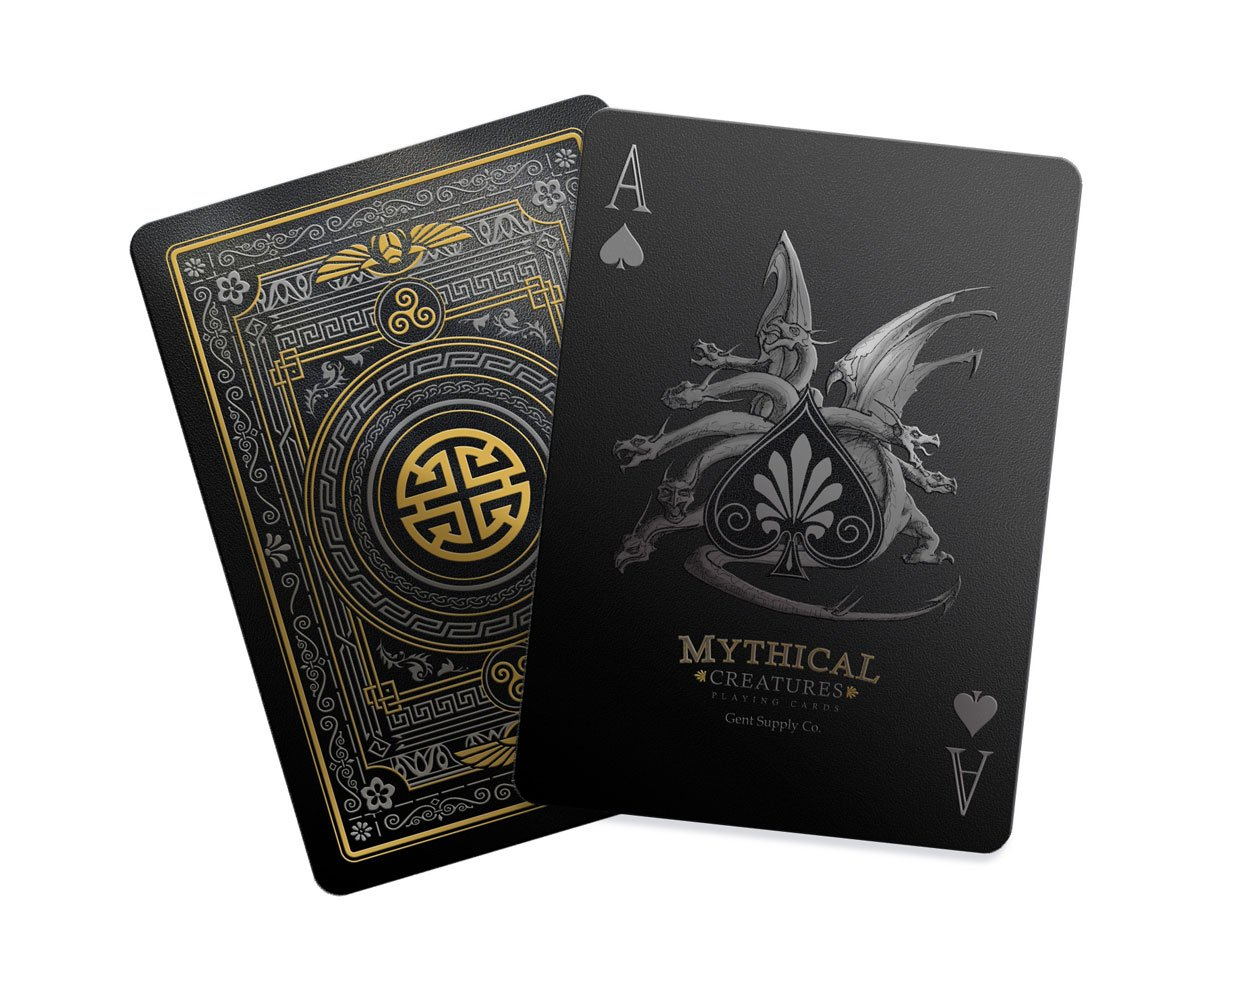 Gent Supply Mythical Creatures - Black Silver & Gold Edition Playing Cards by Gent Supply